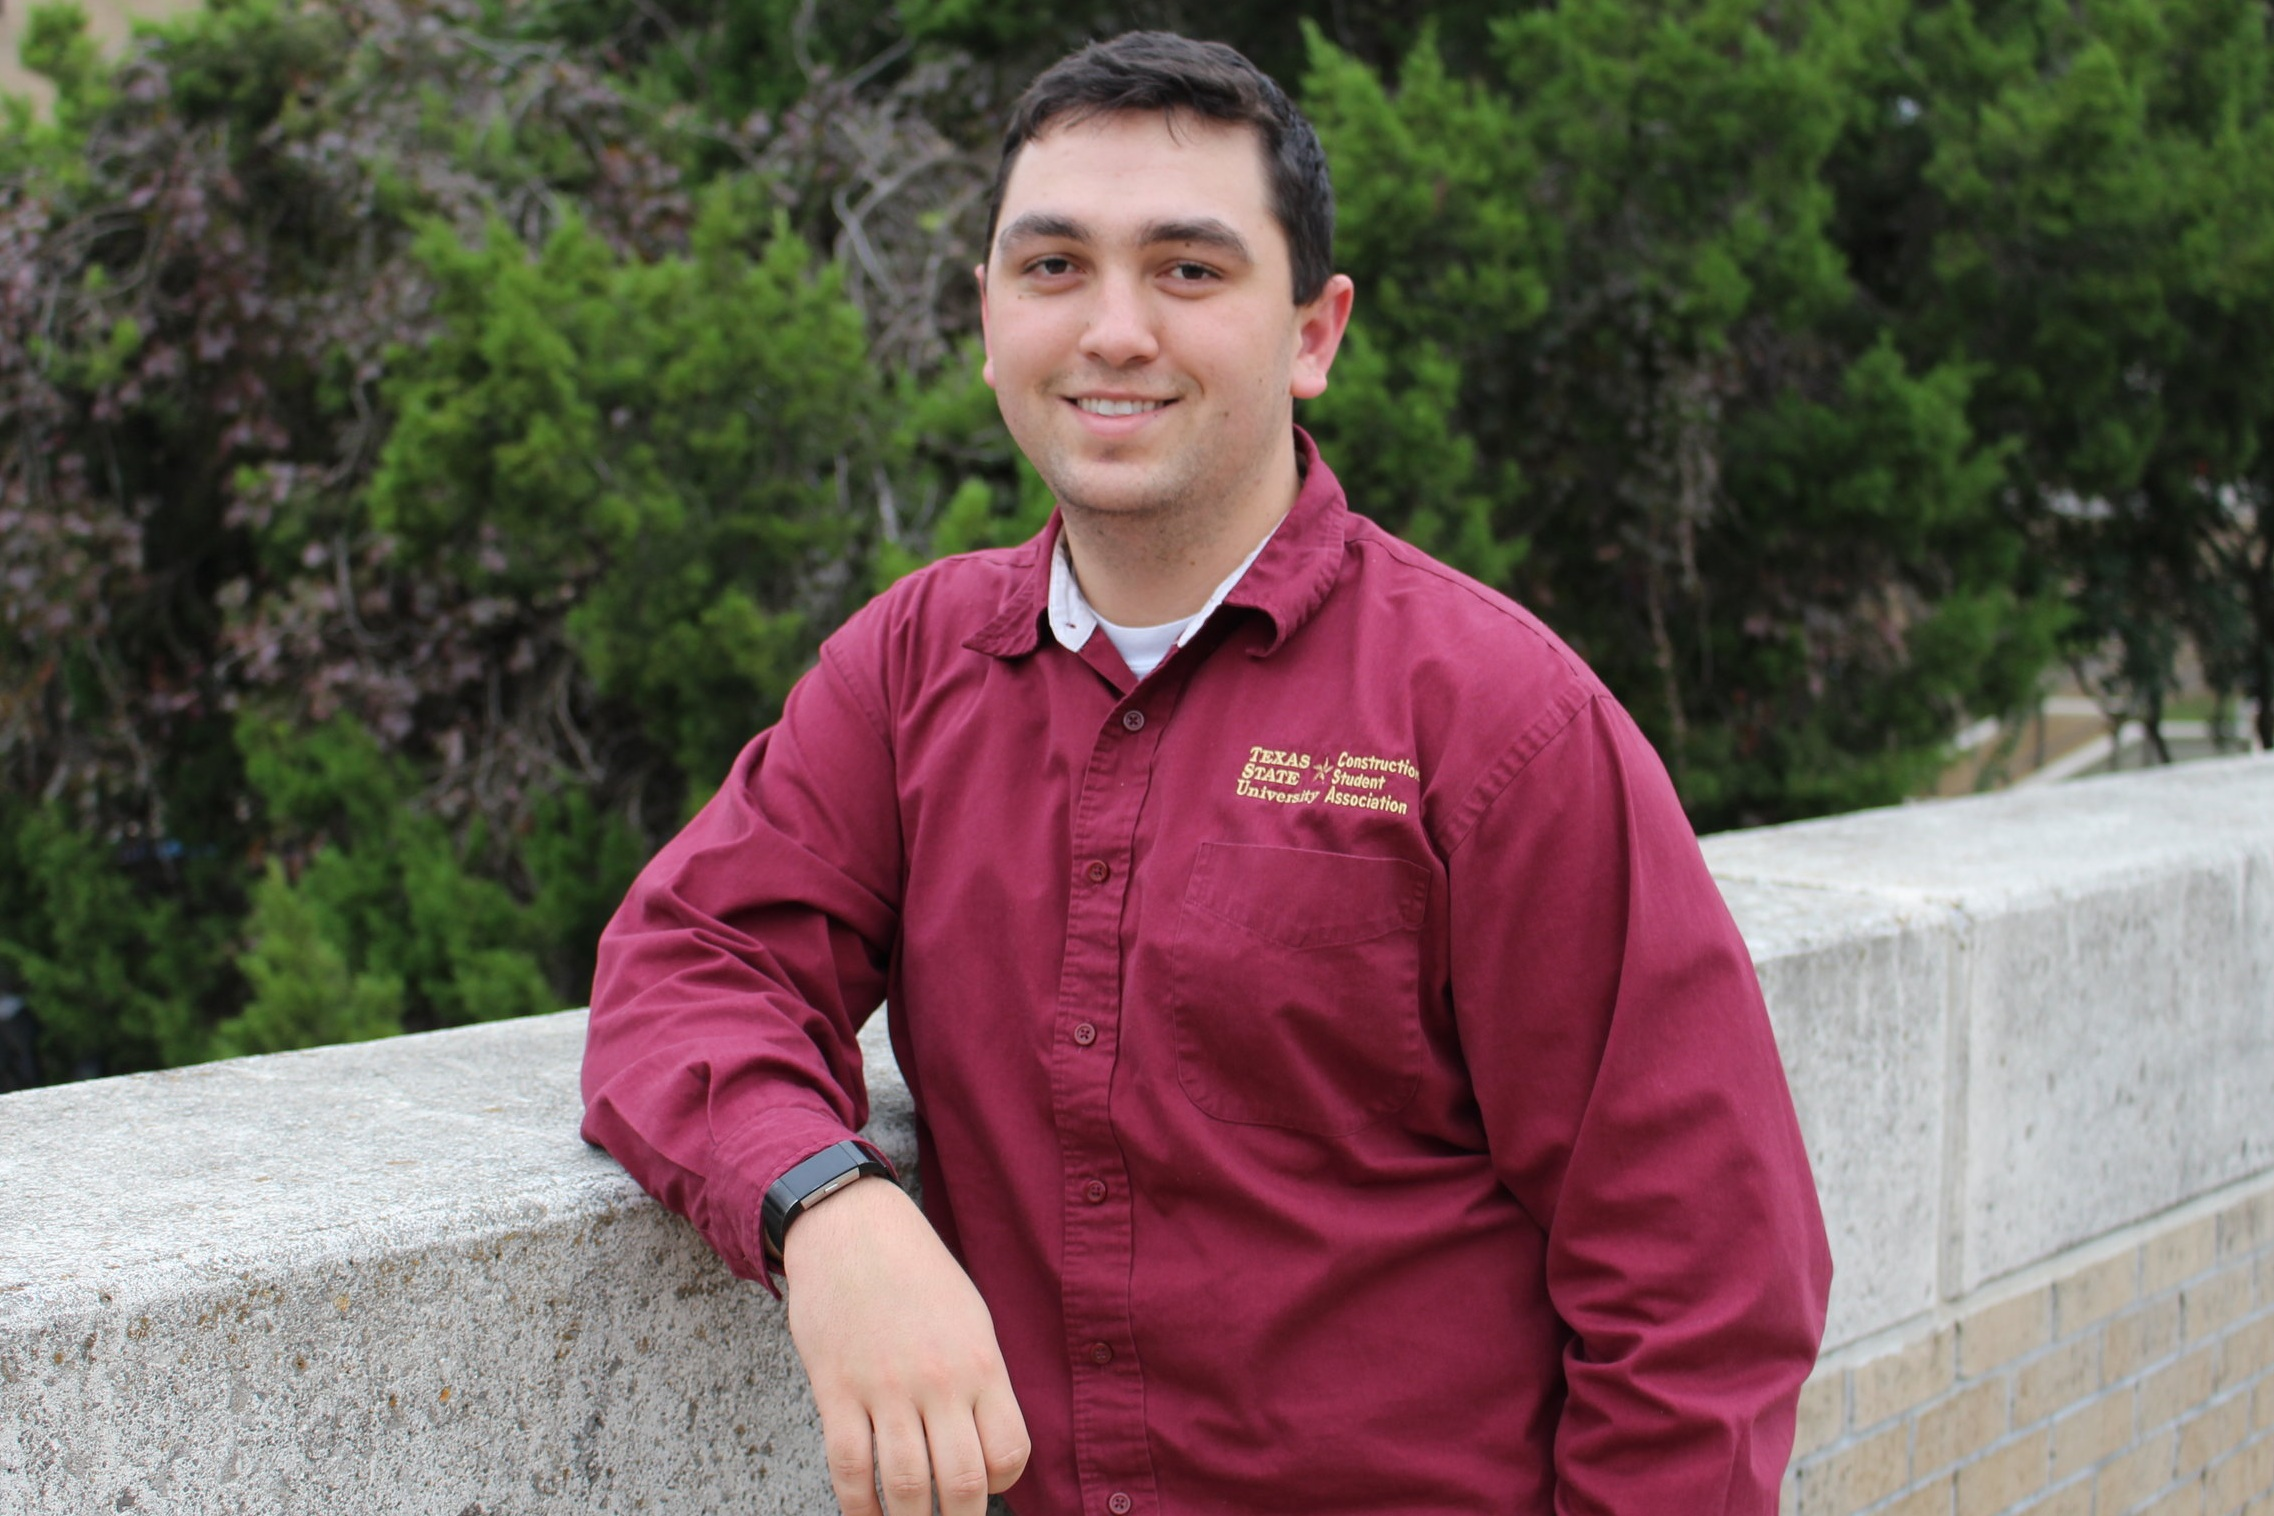 Vice President-Austin Elms - Hometown: San Antonio, TexasGraduation: Spring 2021Field of Interest: Commercial, IndustrialPast Experience: 2 ABC Competitions, 2 ASC Competitions, NAHB Competition, Currently at Wurzel Builders.Previous Positions: TreasurerTasks: Assists President with organization and decision making. Also plays a large role in reaching out to employers and other organizations.Contact: ame82@txstate.edu